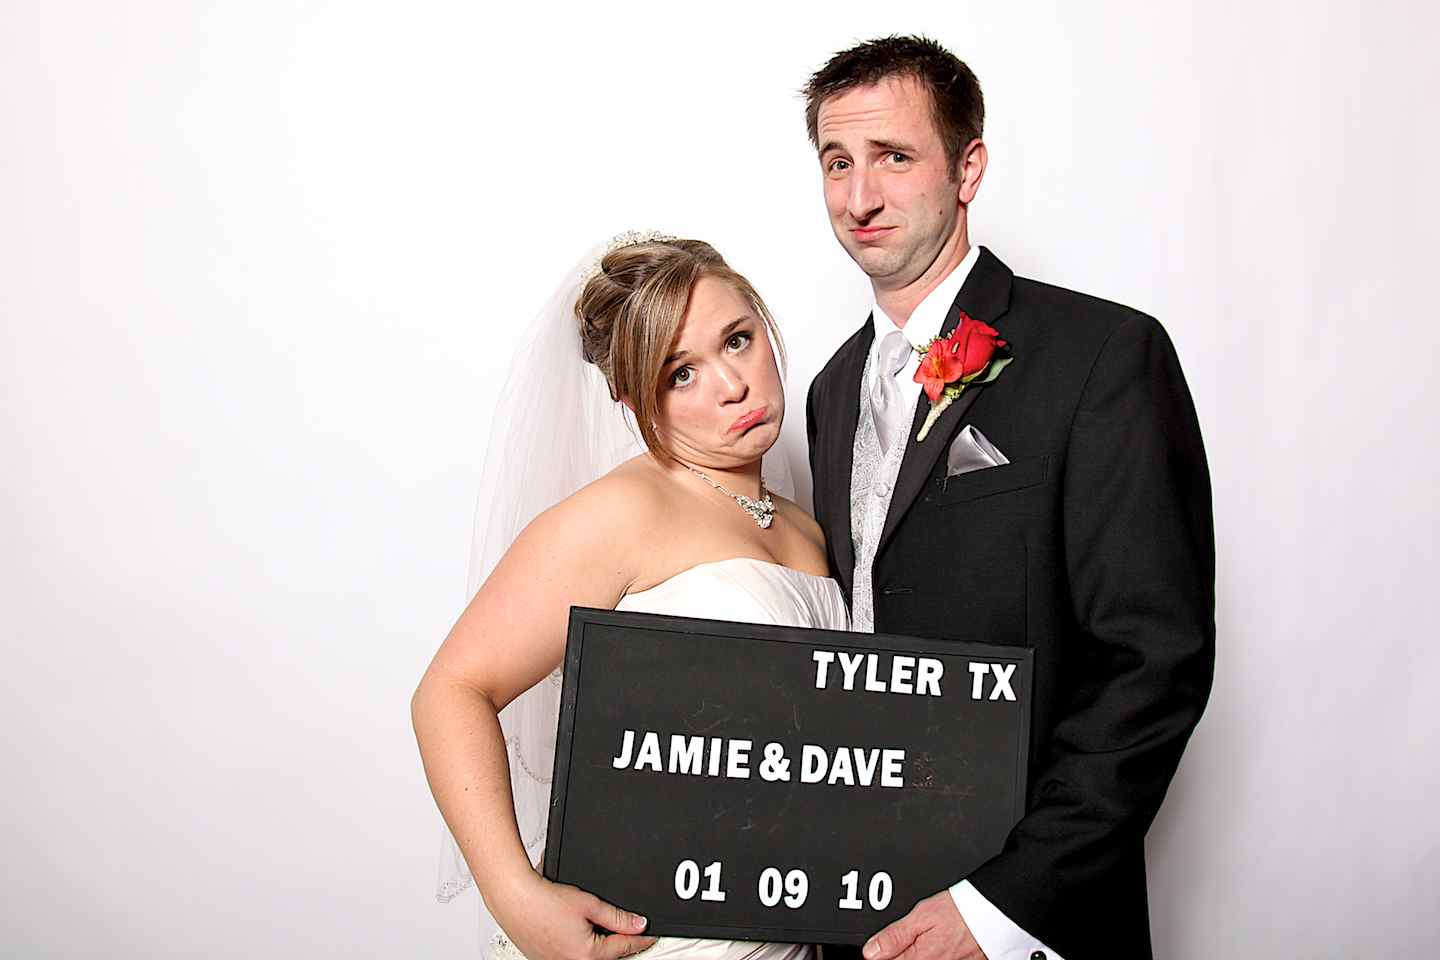 10172The Mug Machine (Jamie & David) | Wedding Photography Tyler, TX